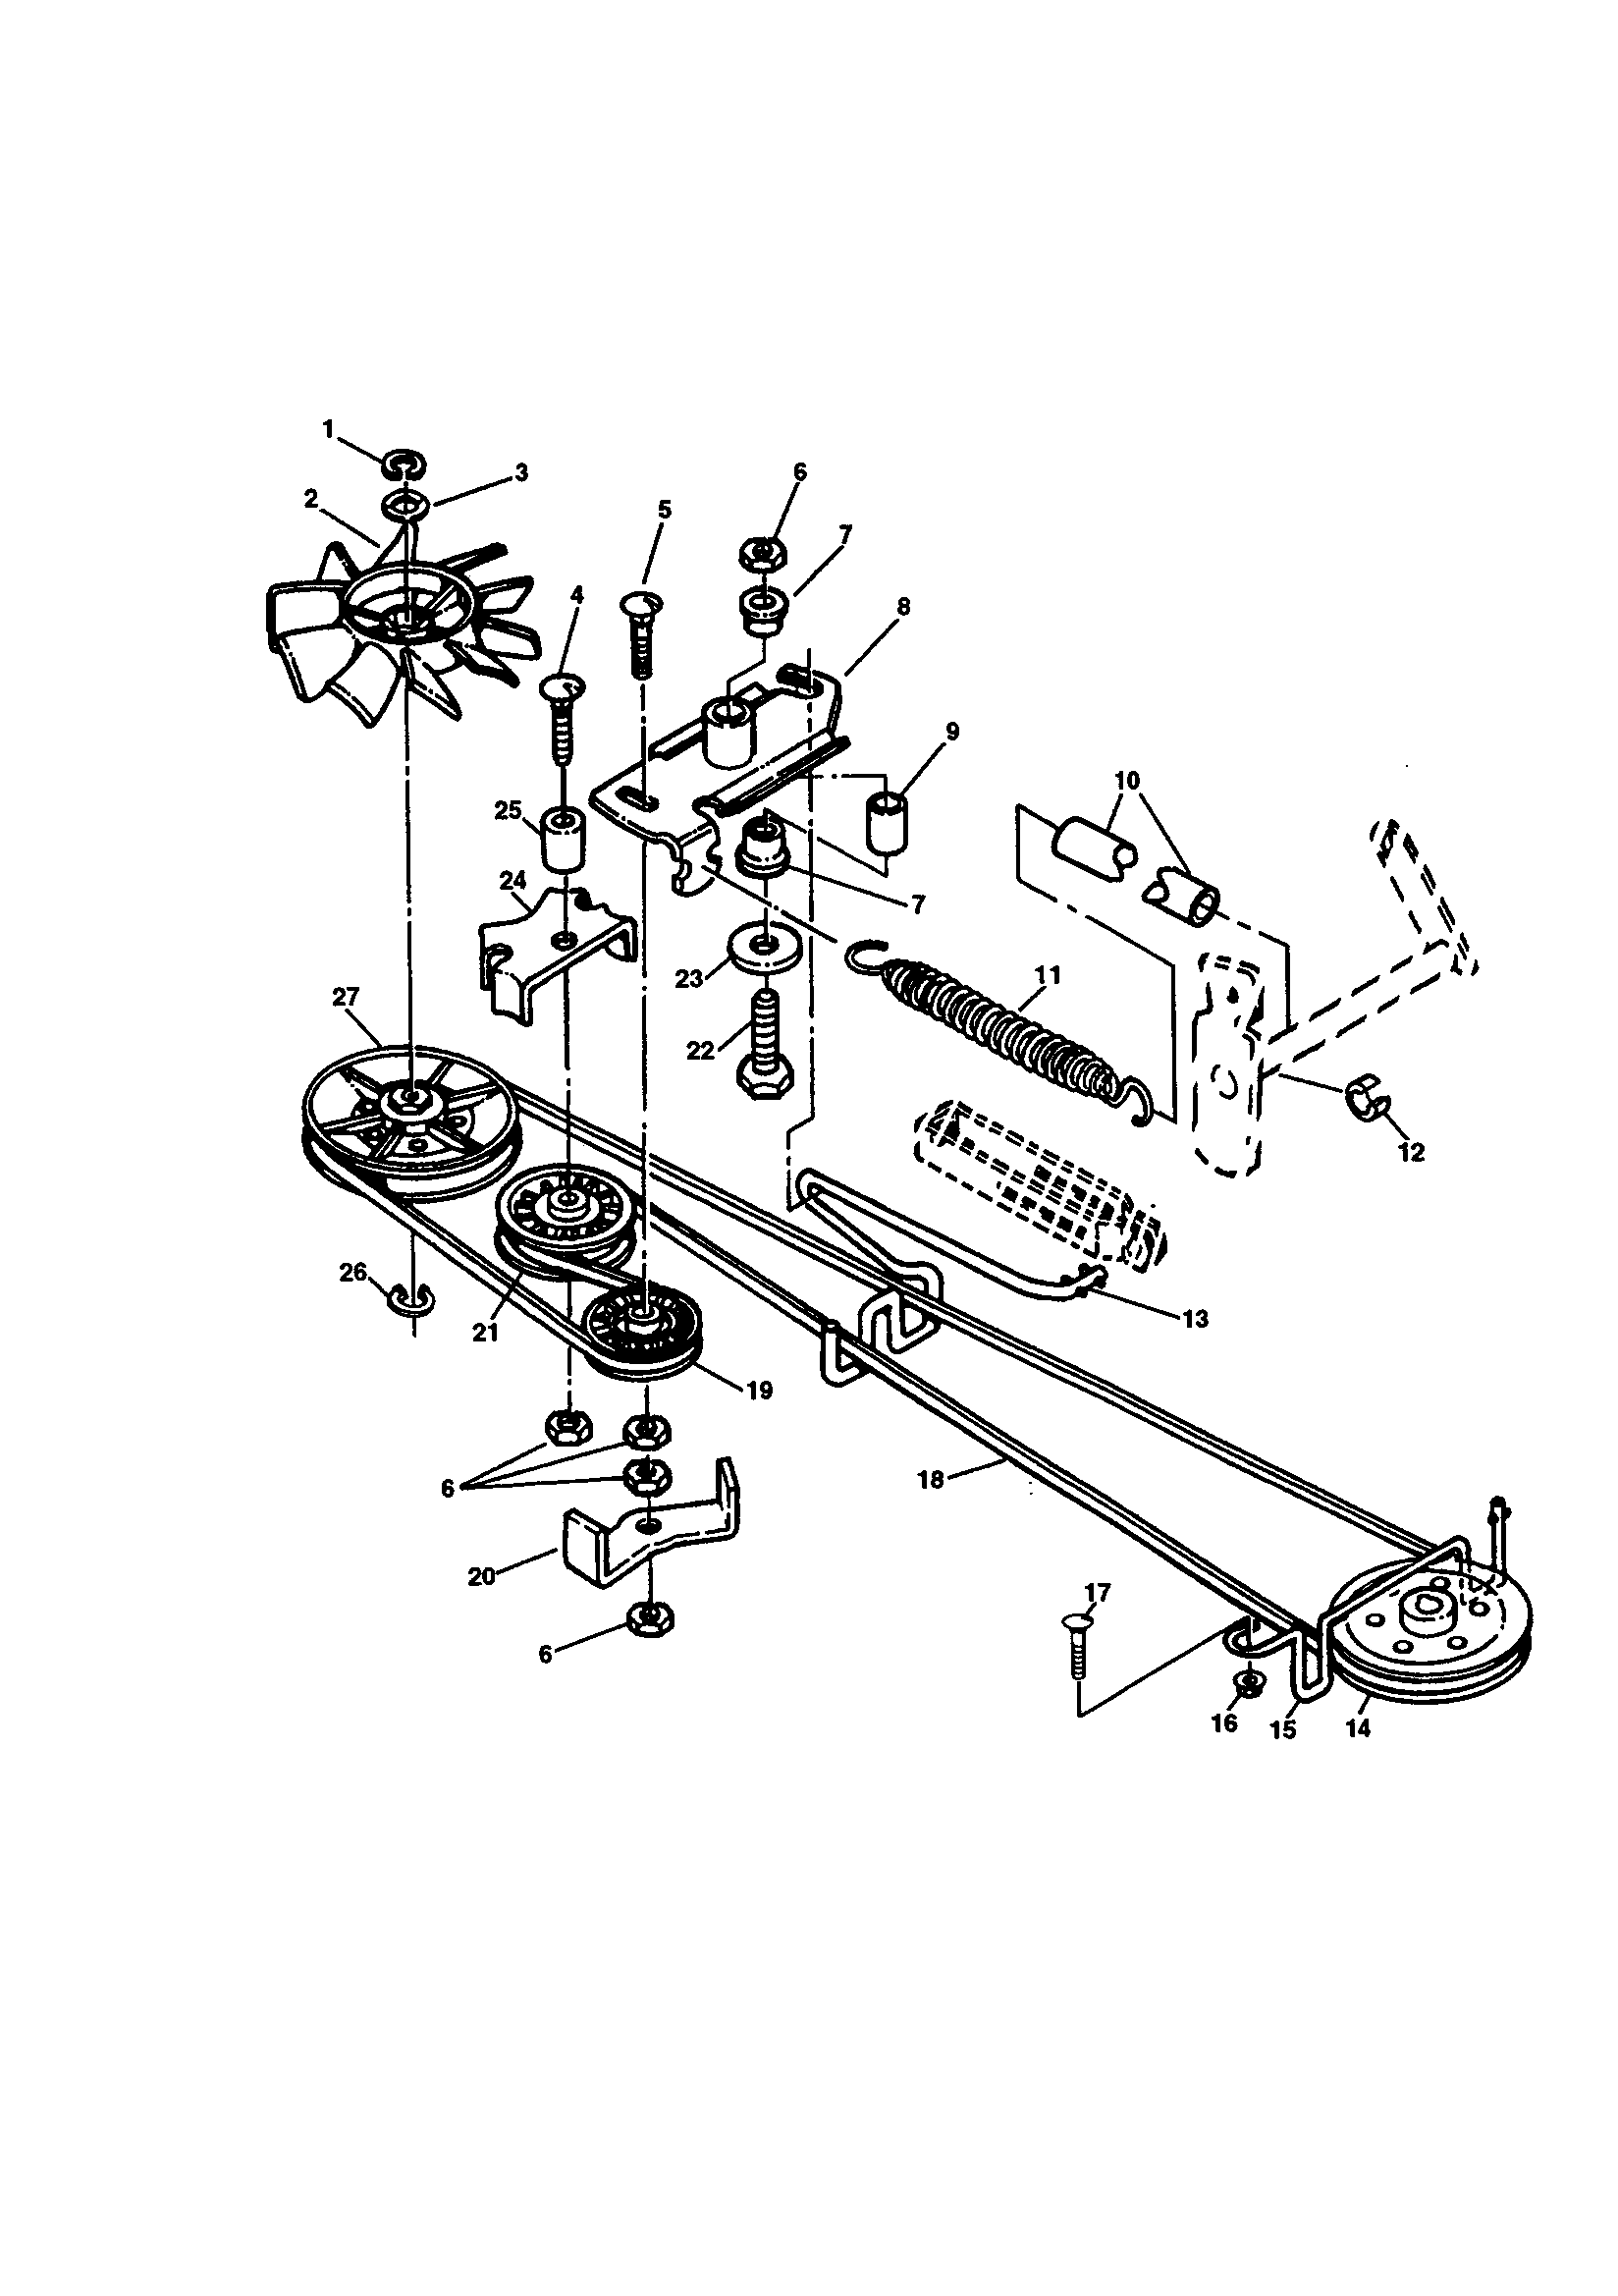 [SL_8579] Saber 1438 Tractor Ignition Switch Wiring